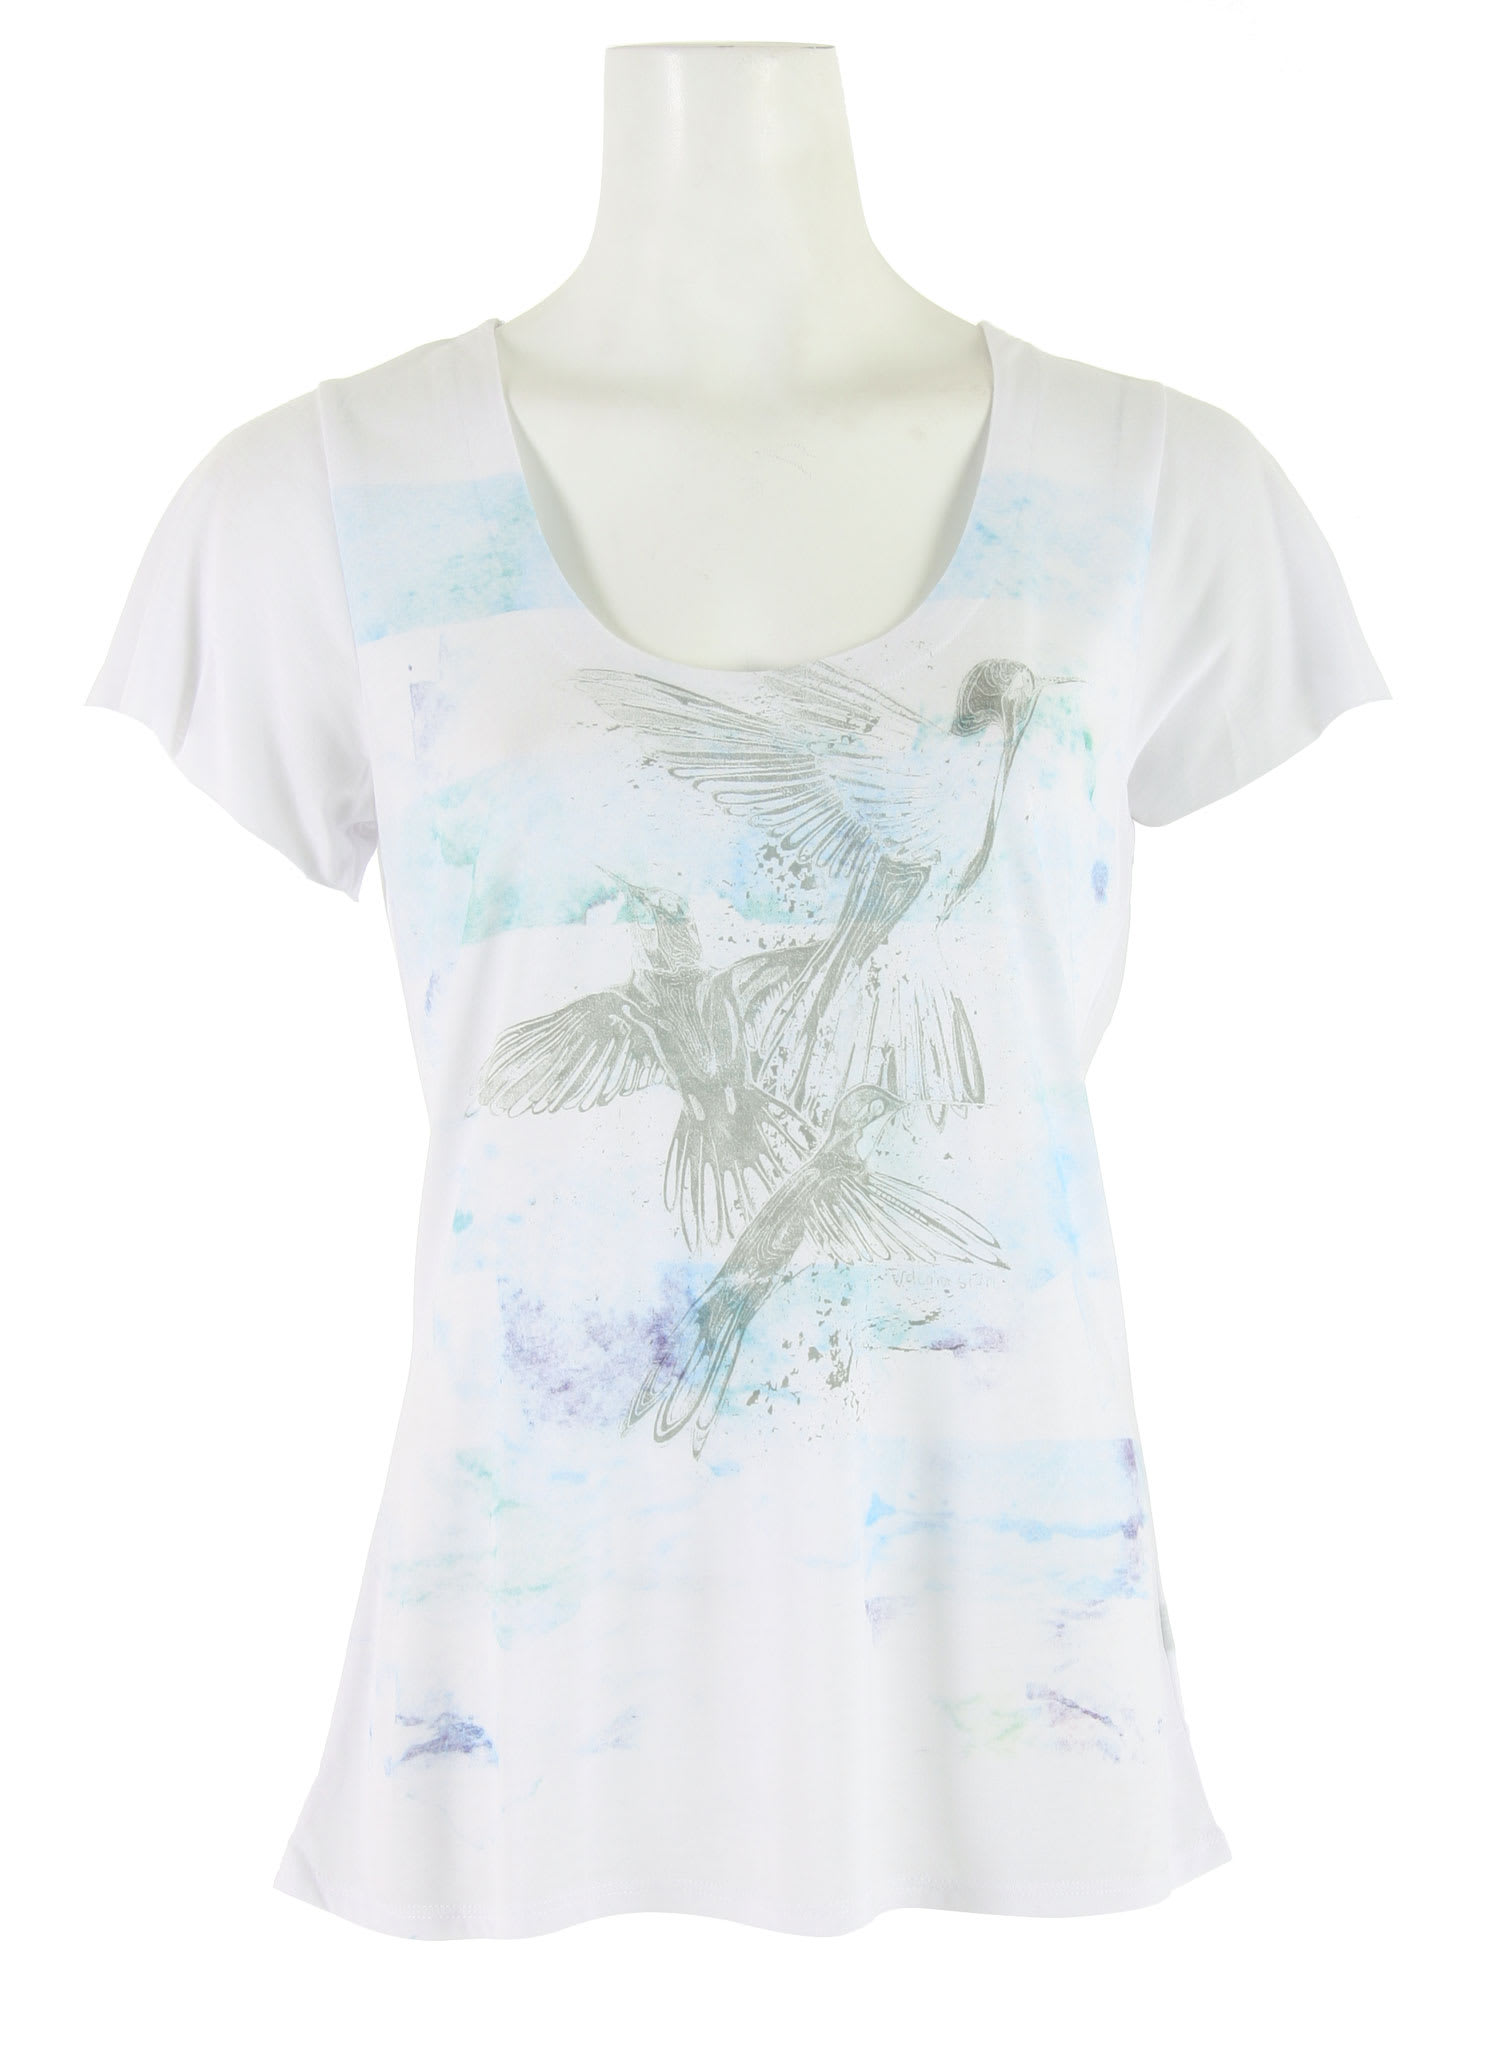 Shop for Volcom Floral Haze Lyric T-Shirt White - Women's